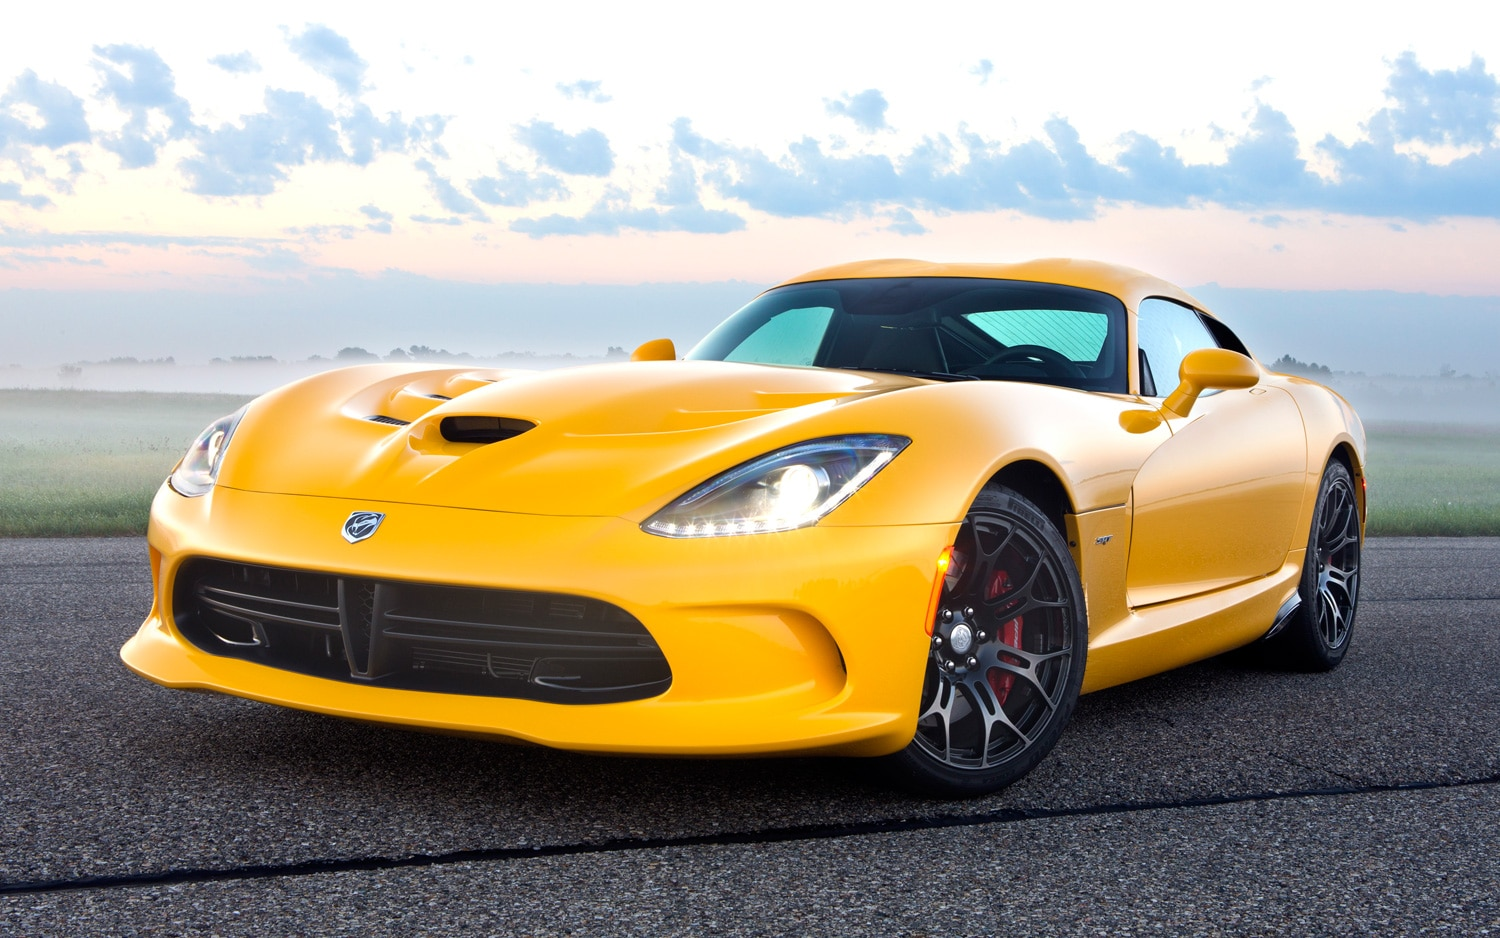 2013 SRT Viper Coupe Yellow Front View In Fog1